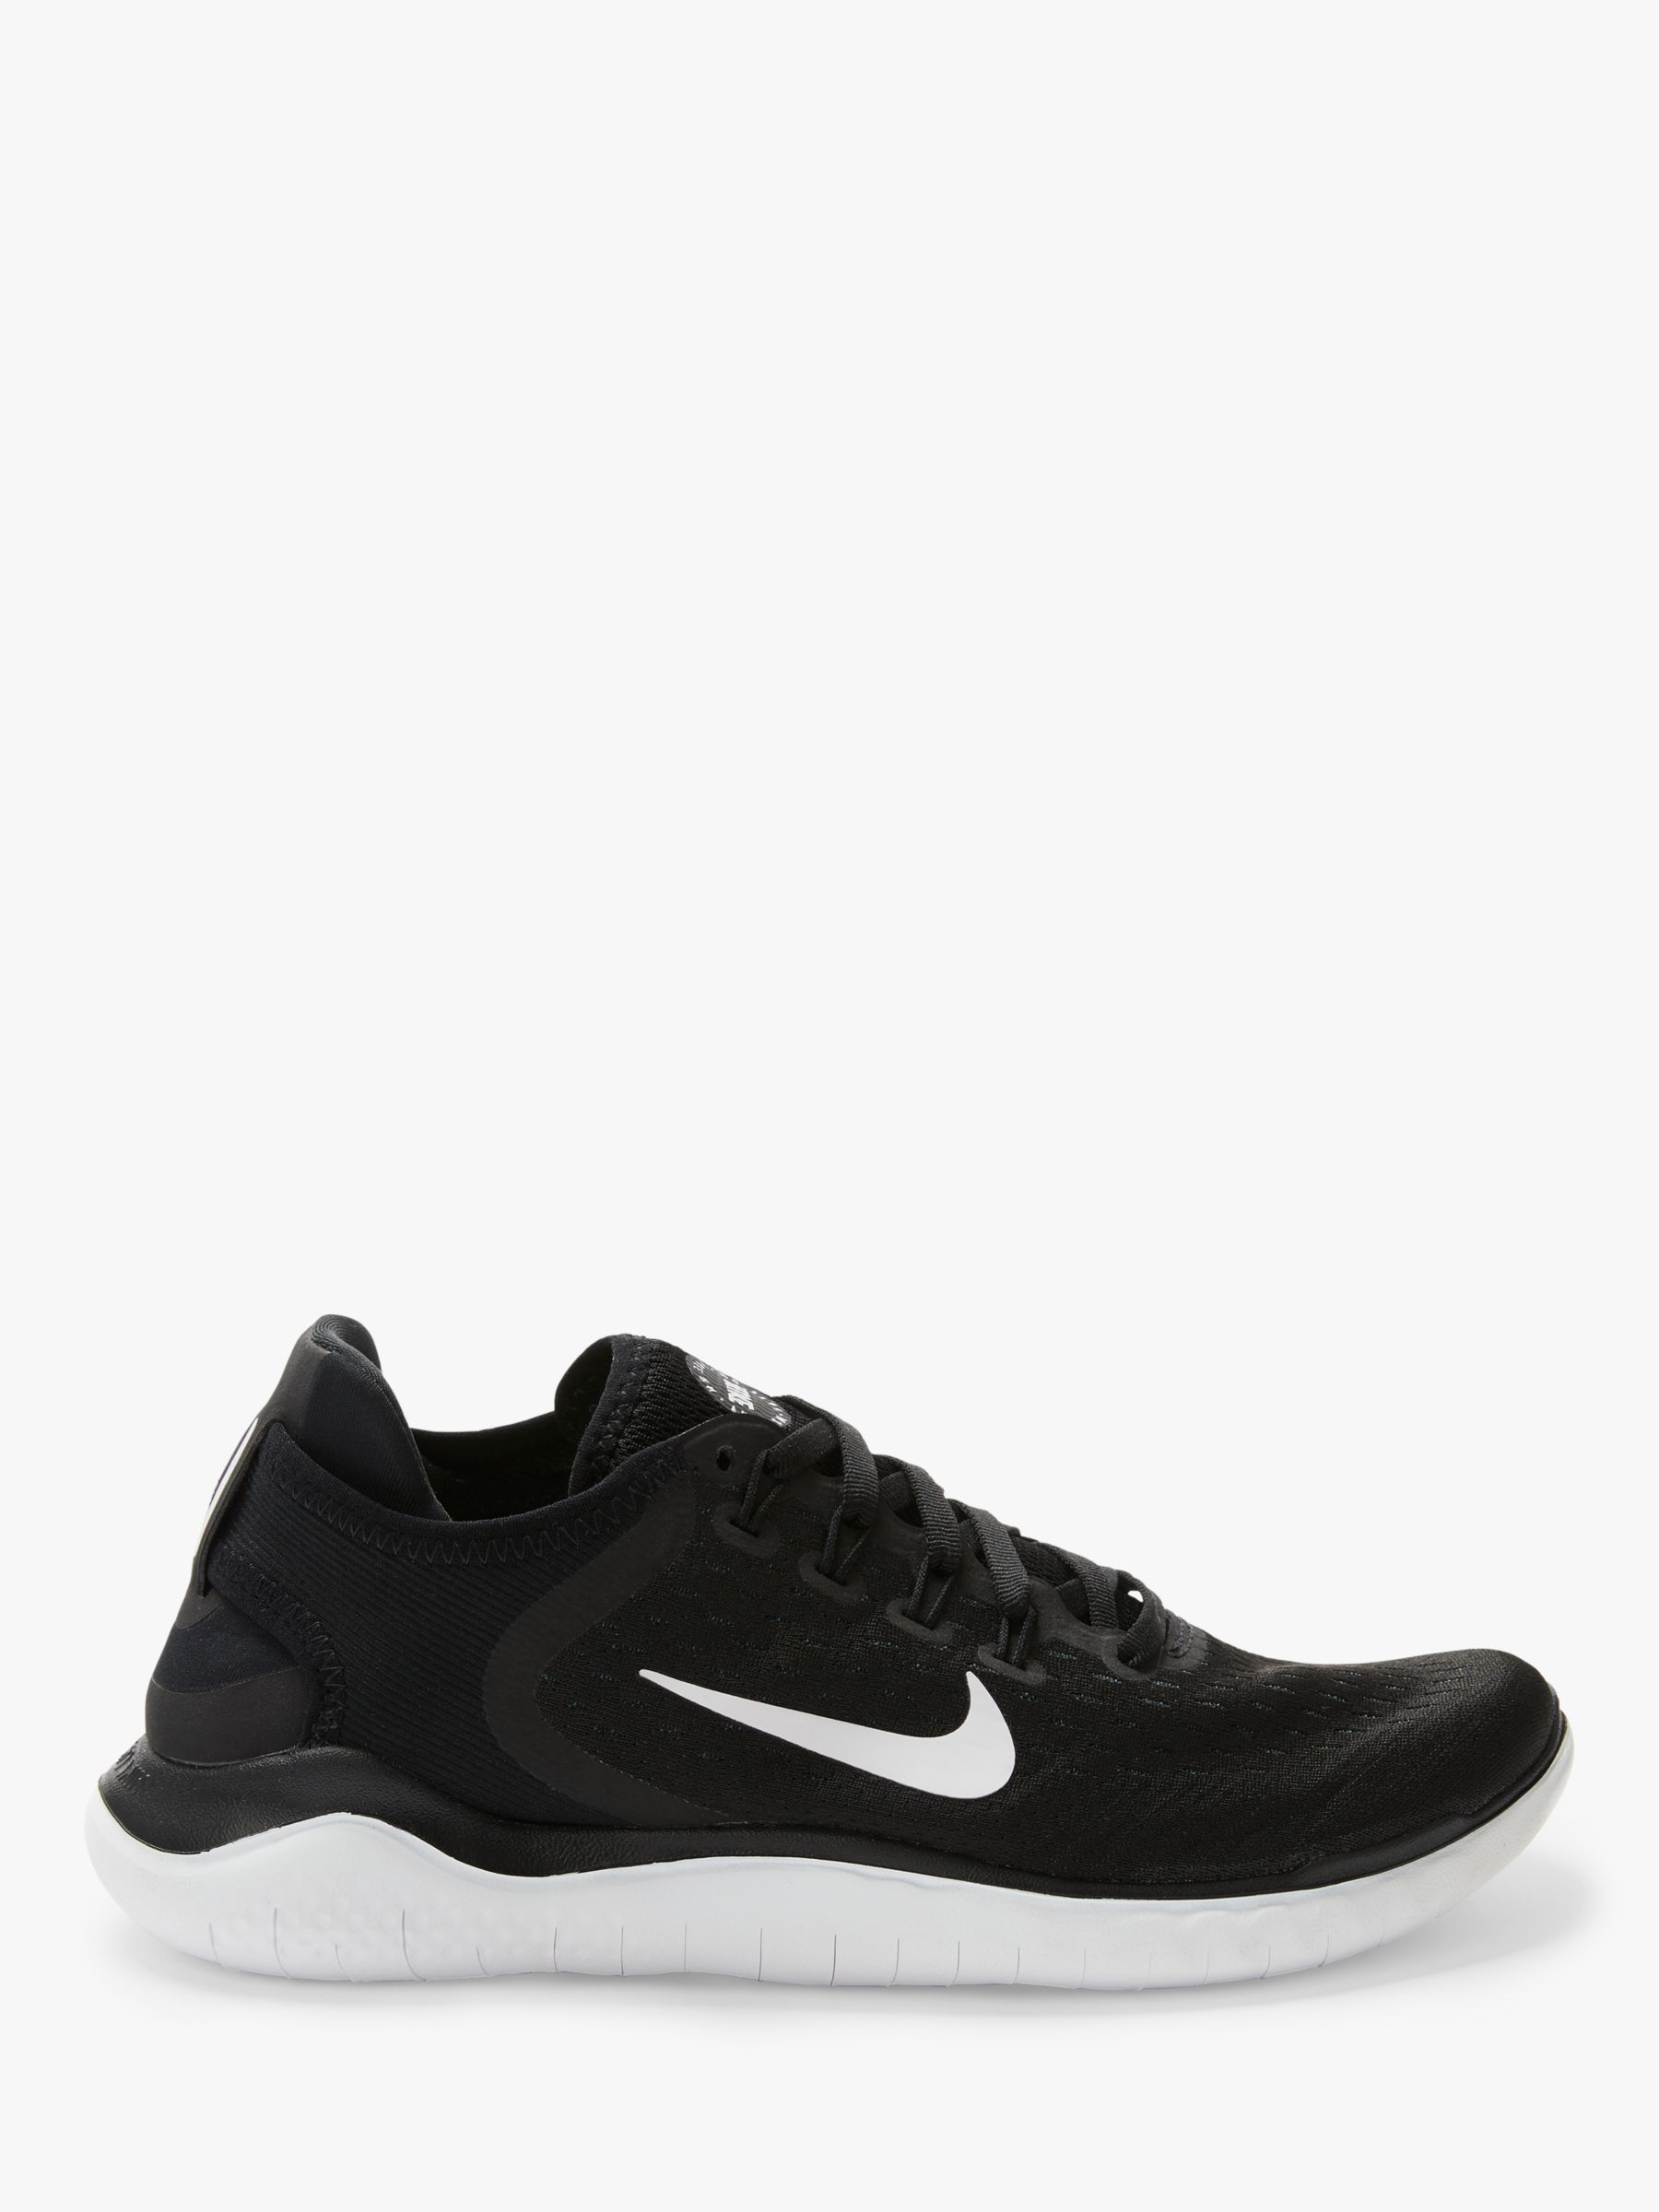 Nike Free RN RN Free 2018 Donna In esecuzione scarpe at John Lewis & Partners 3dadd0